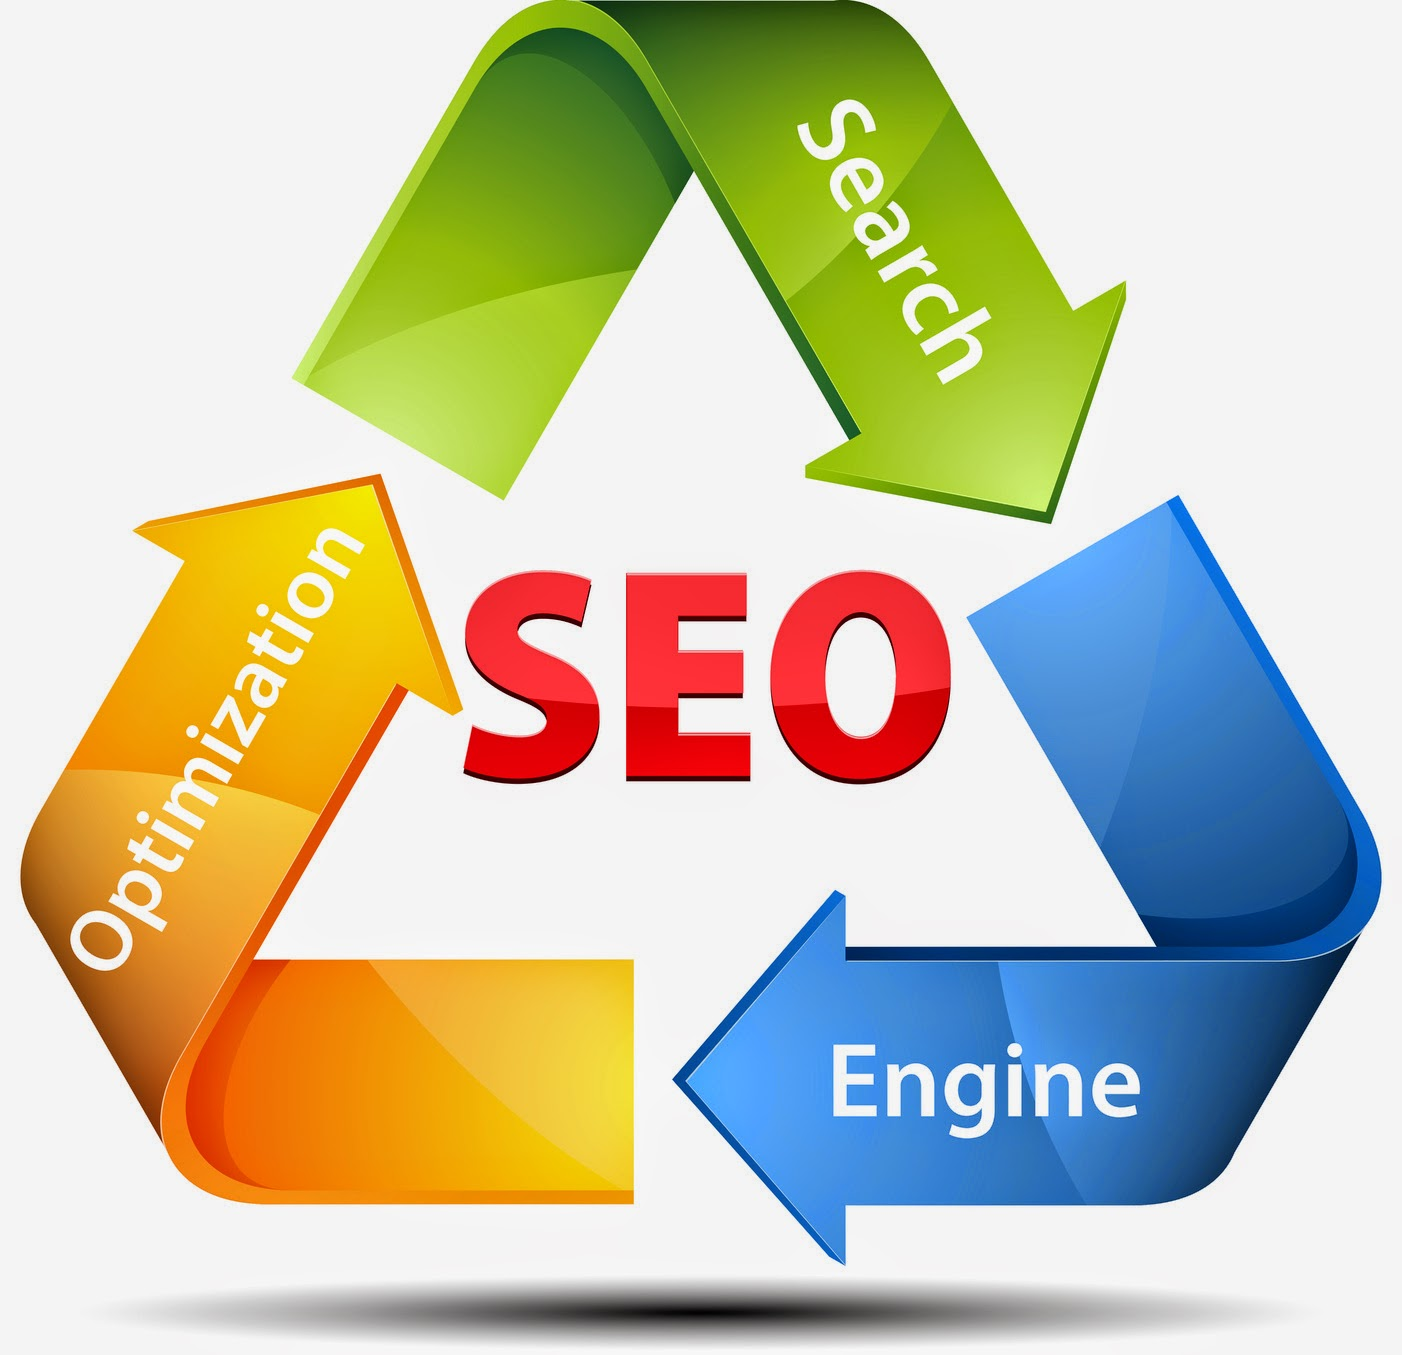 RE: What is SEO?